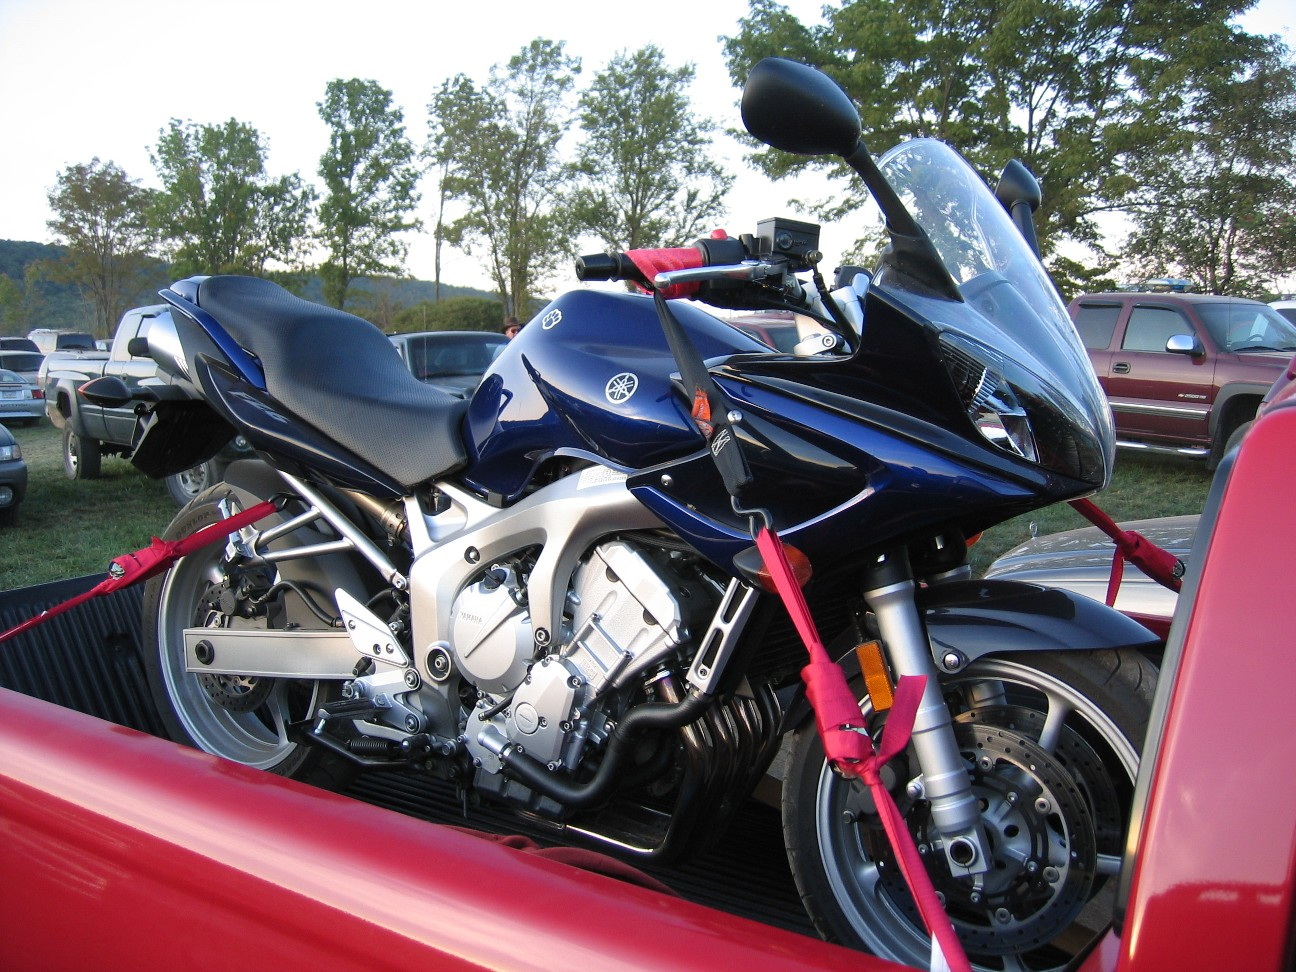 D Best Tie Down Points Fz While Trailering Tie Down on 2005 Yamaha Fz6